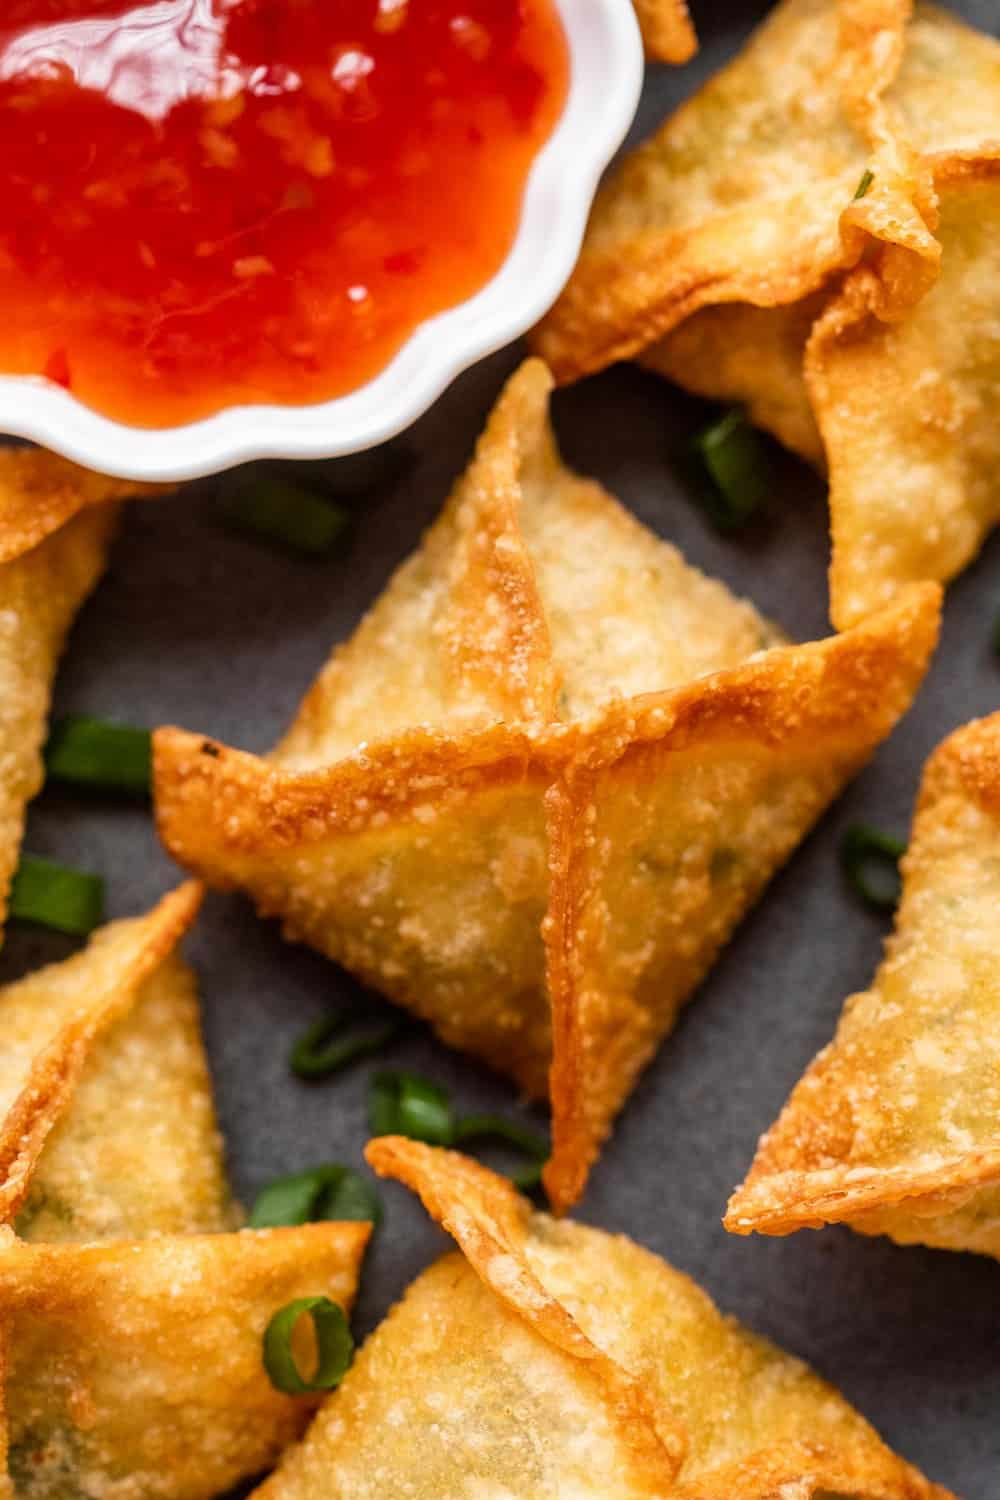 Closeup of a piece of crab rangoon on a plate